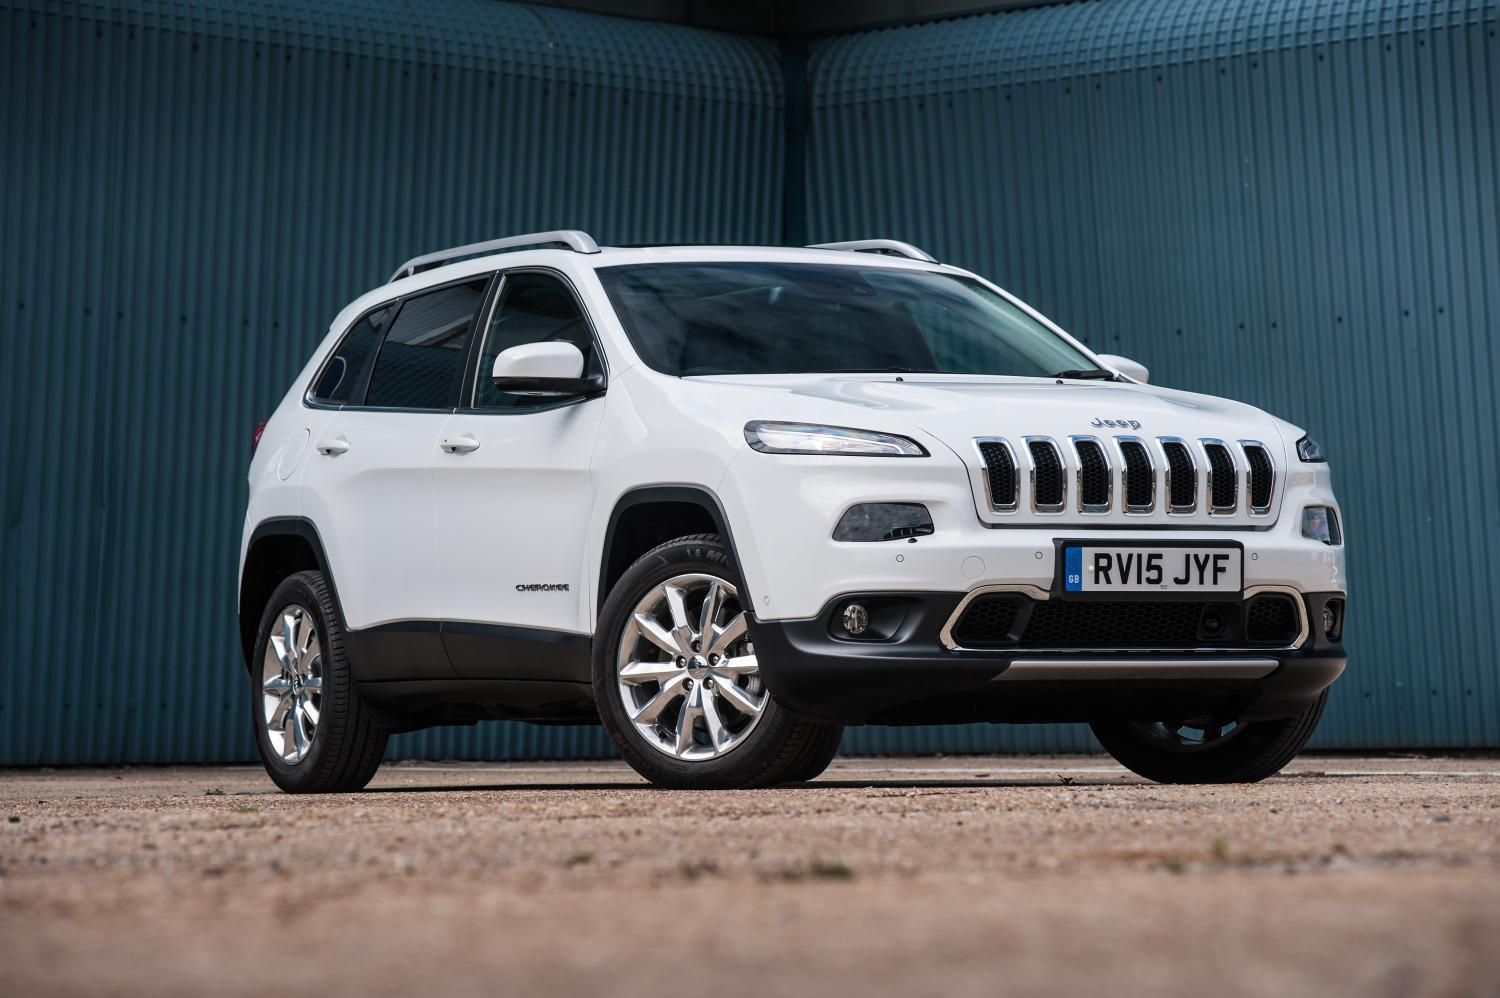 New Jeep Cherokee >> Jeep Cherokee Rewarded With New Diesel Engine With 185 Hp And 200